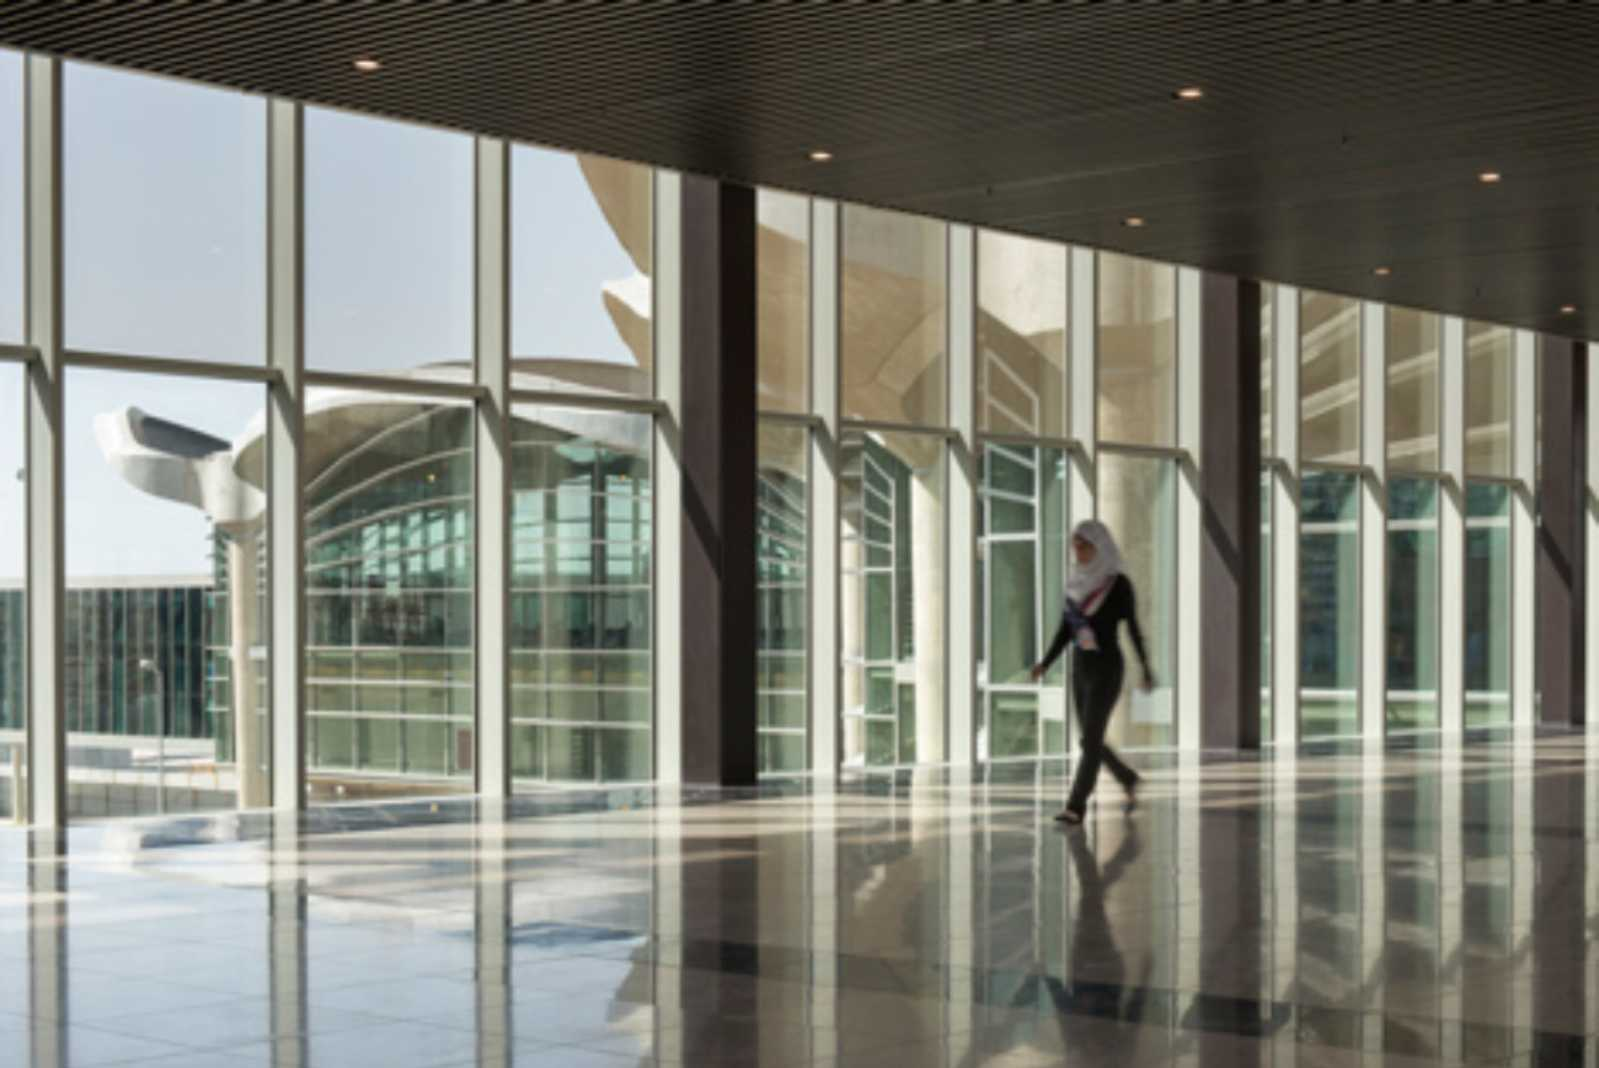 Queen alia international airport by foster partners